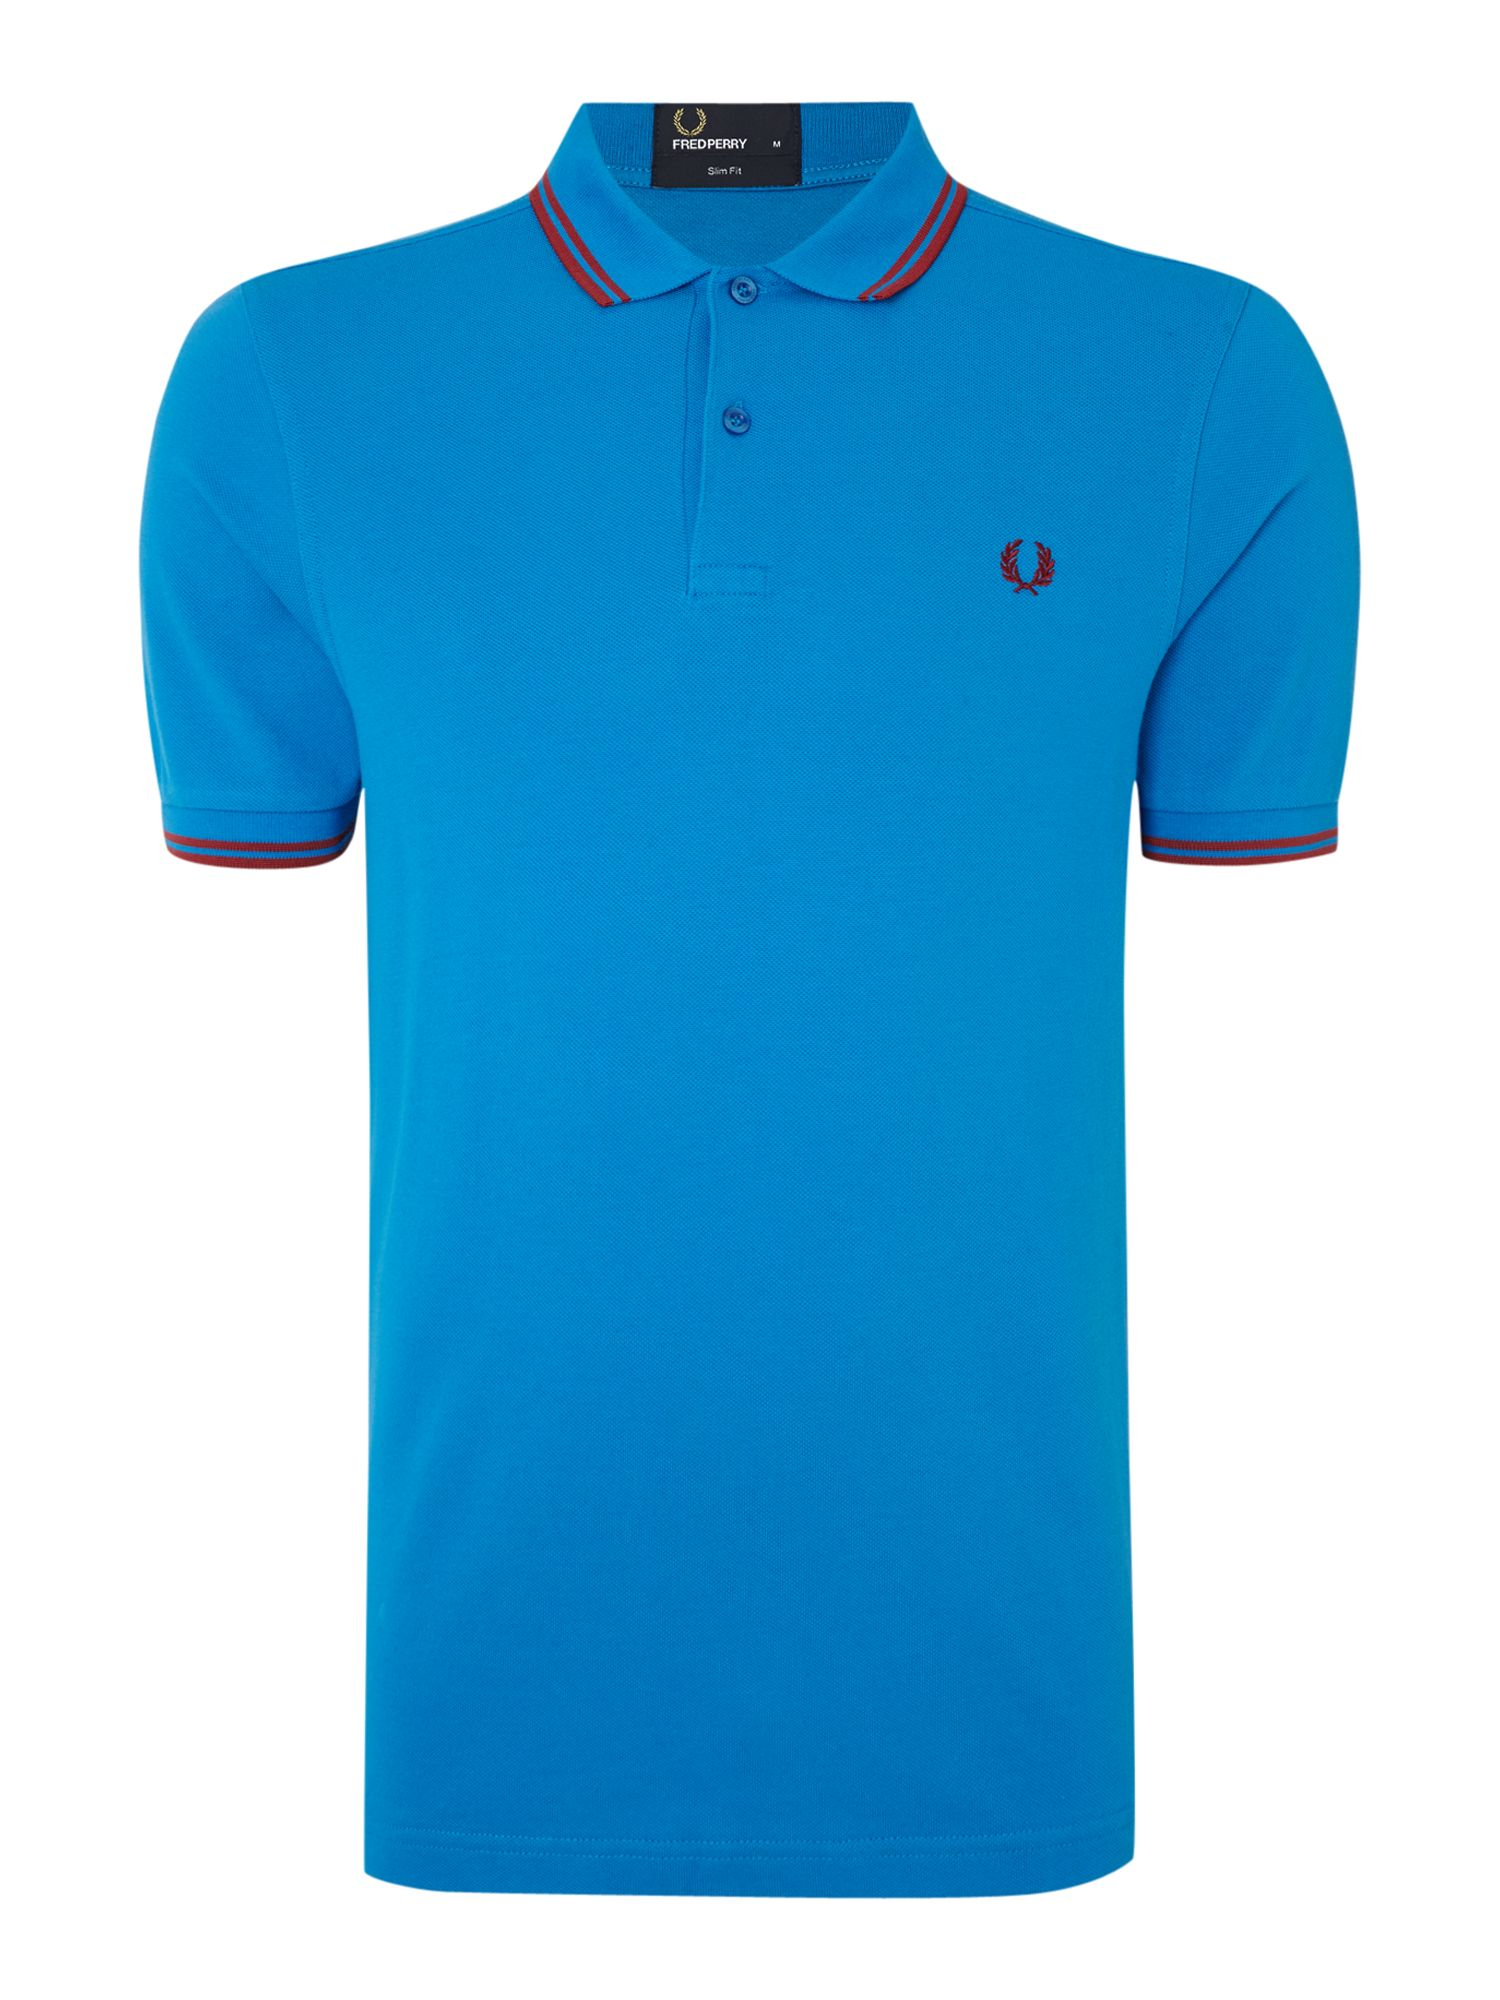 fred perry plain slim fit polo shirt in blue for men. Black Bedroom Furniture Sets. Home Design Ideas